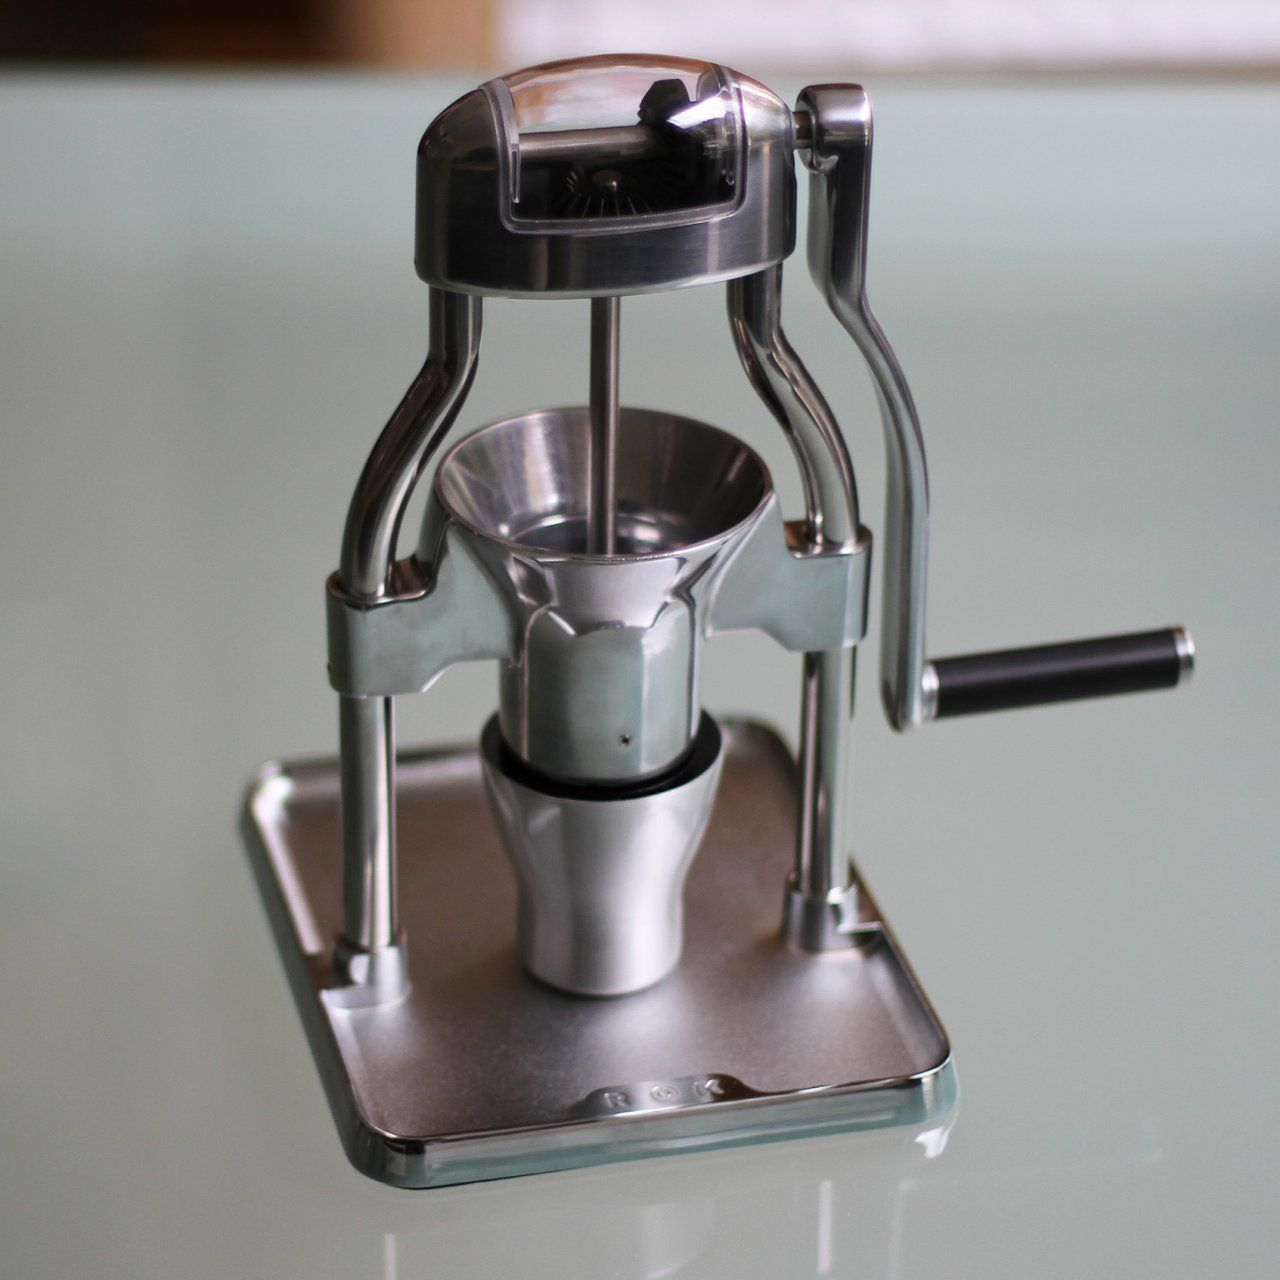 ROK Manual Coffee Grinder in 2020 Manual coffee grinder